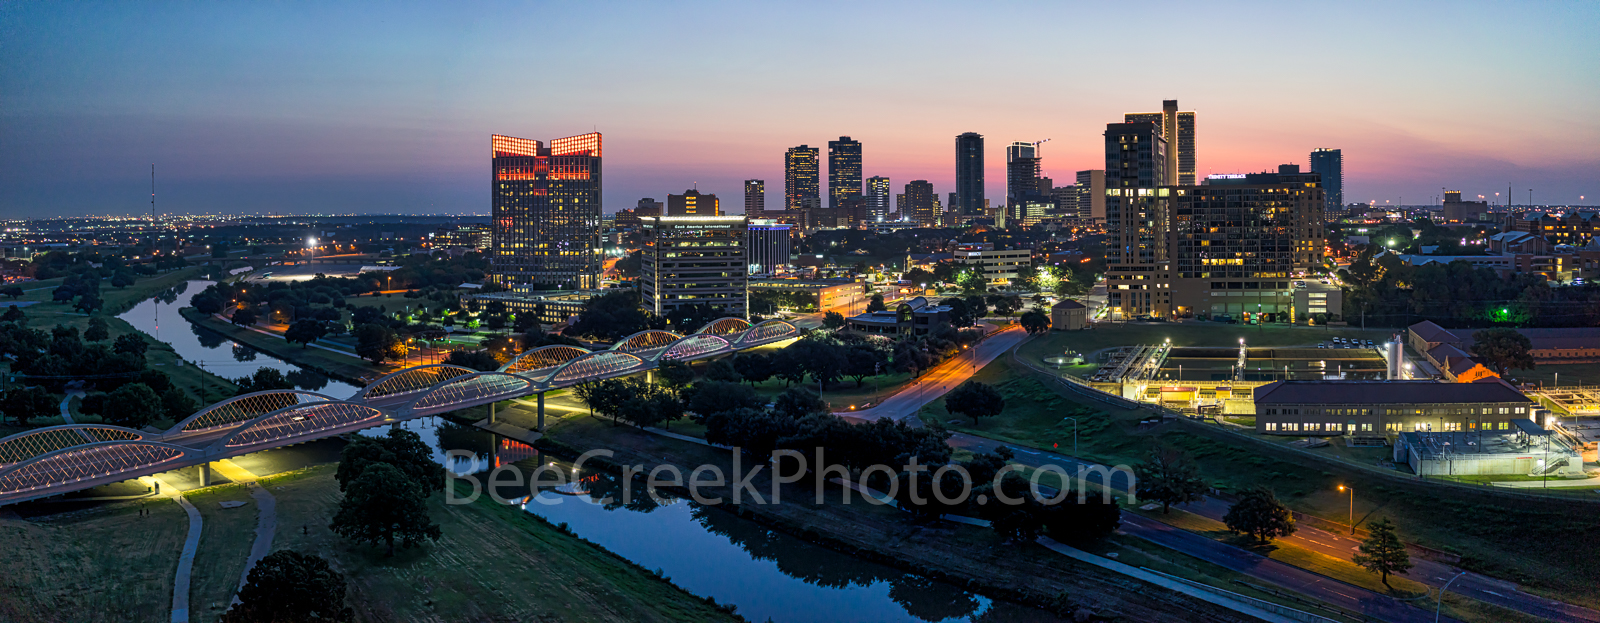 Fort Worth Skyline,Fort Worth Skyline Sunrise , skylines, cityscape, cityscapes, downtown, sunrise, panorama, pano, pink, seventh street bridge, 7th street bridge, Trinity river, Texas, city, purple l, photo